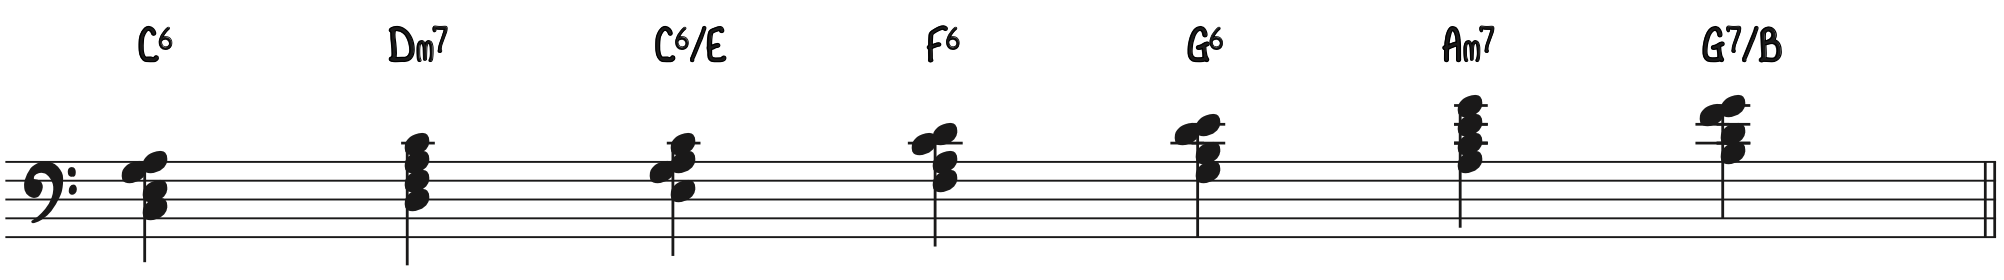 Colorized Chords for Stride Piano Exercise